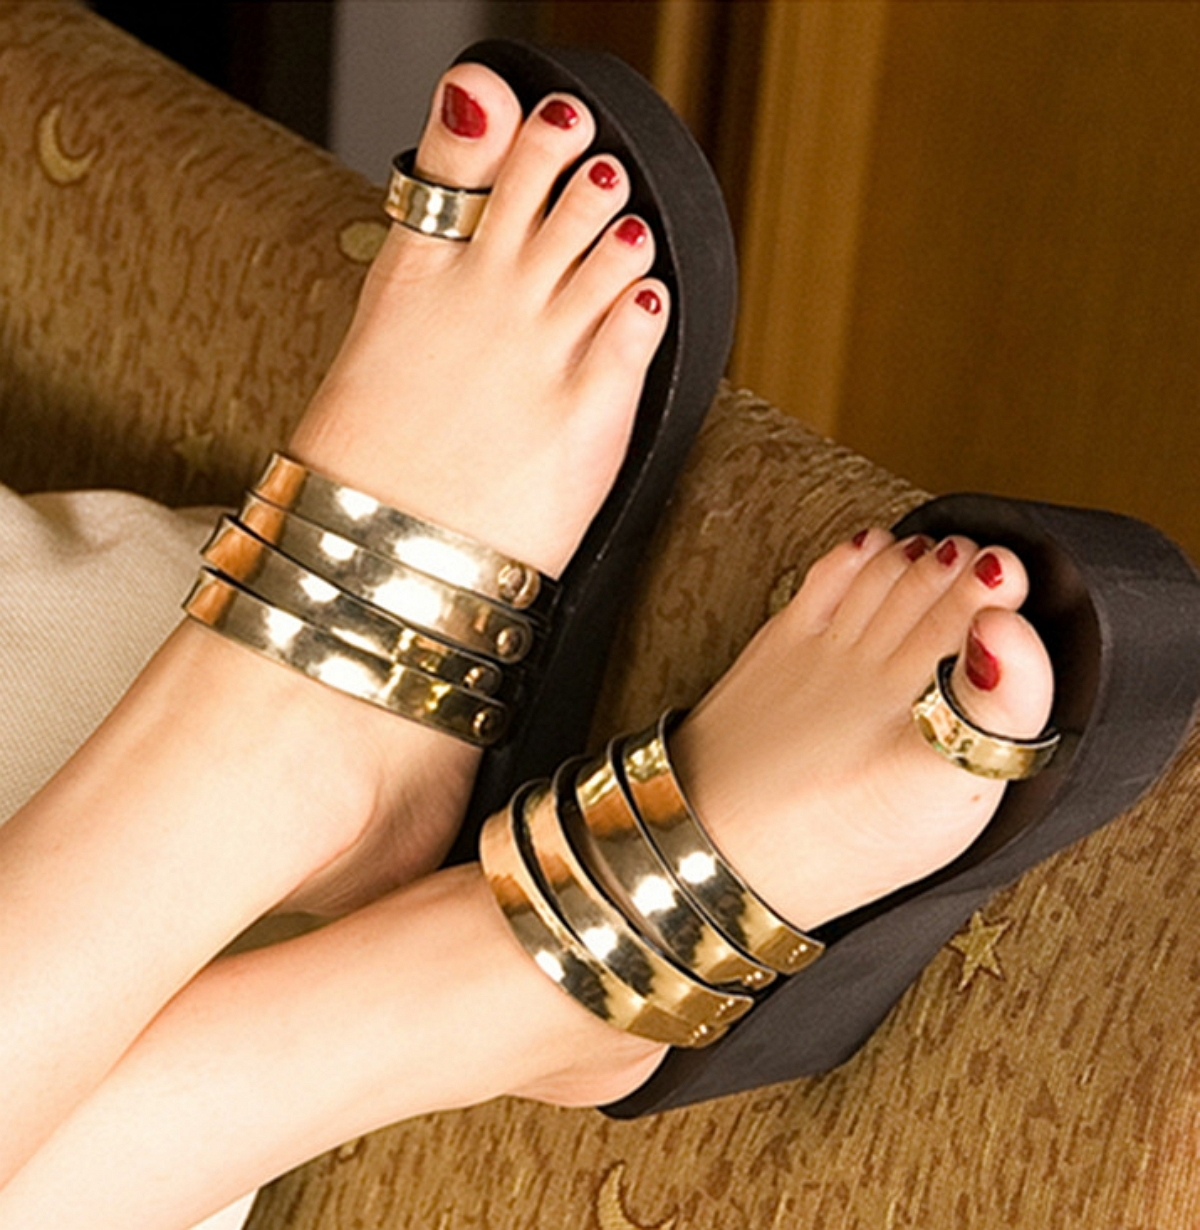 Toe Ring Sandals 4 | Sandals & Pedicure For Most Current Toe Rings In Gold (View 15 of 15)